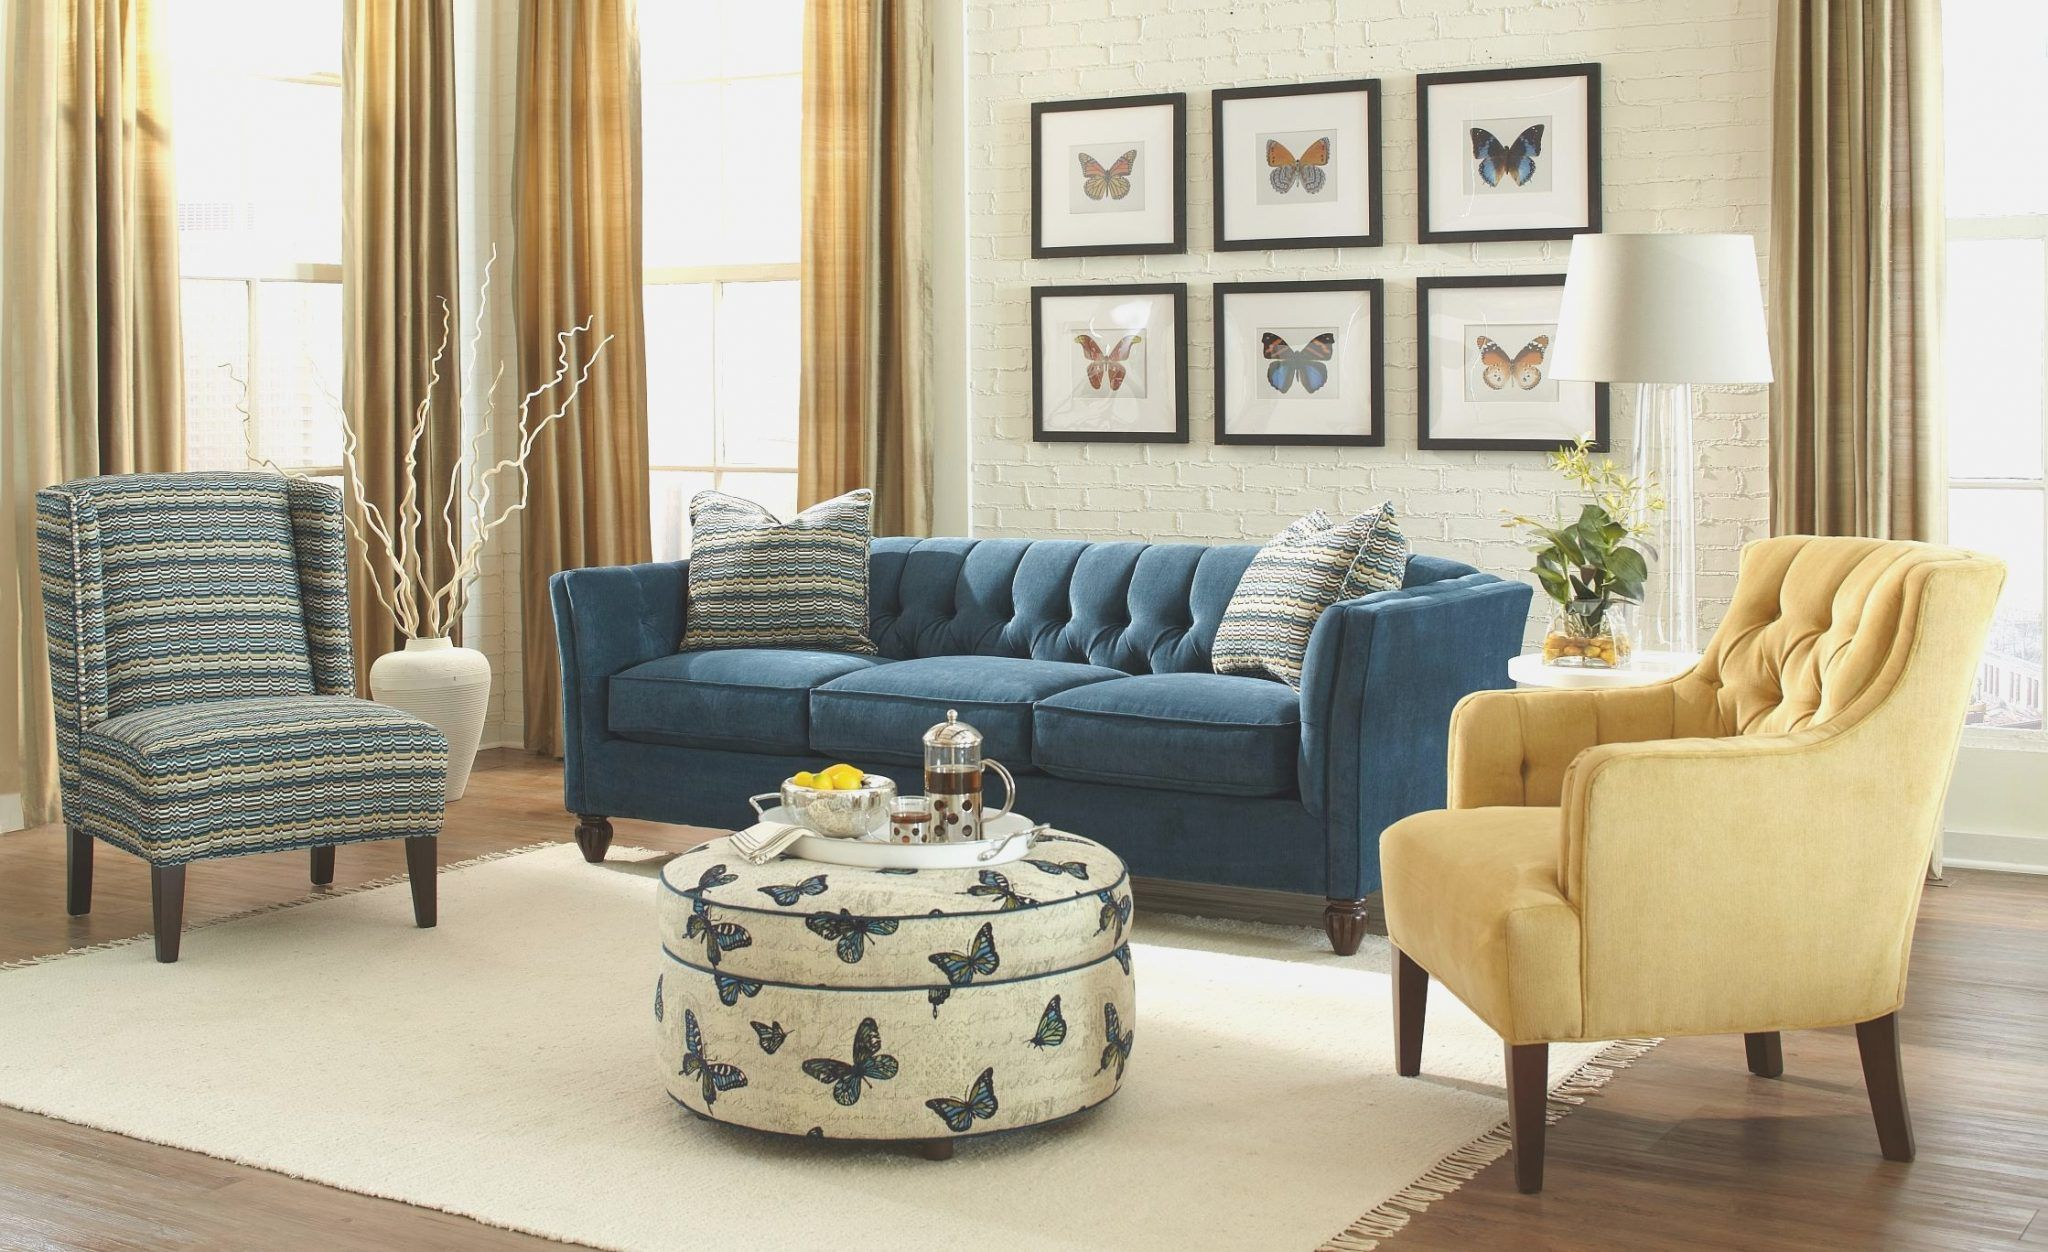 Living room interior design ideas interior design ideas for your